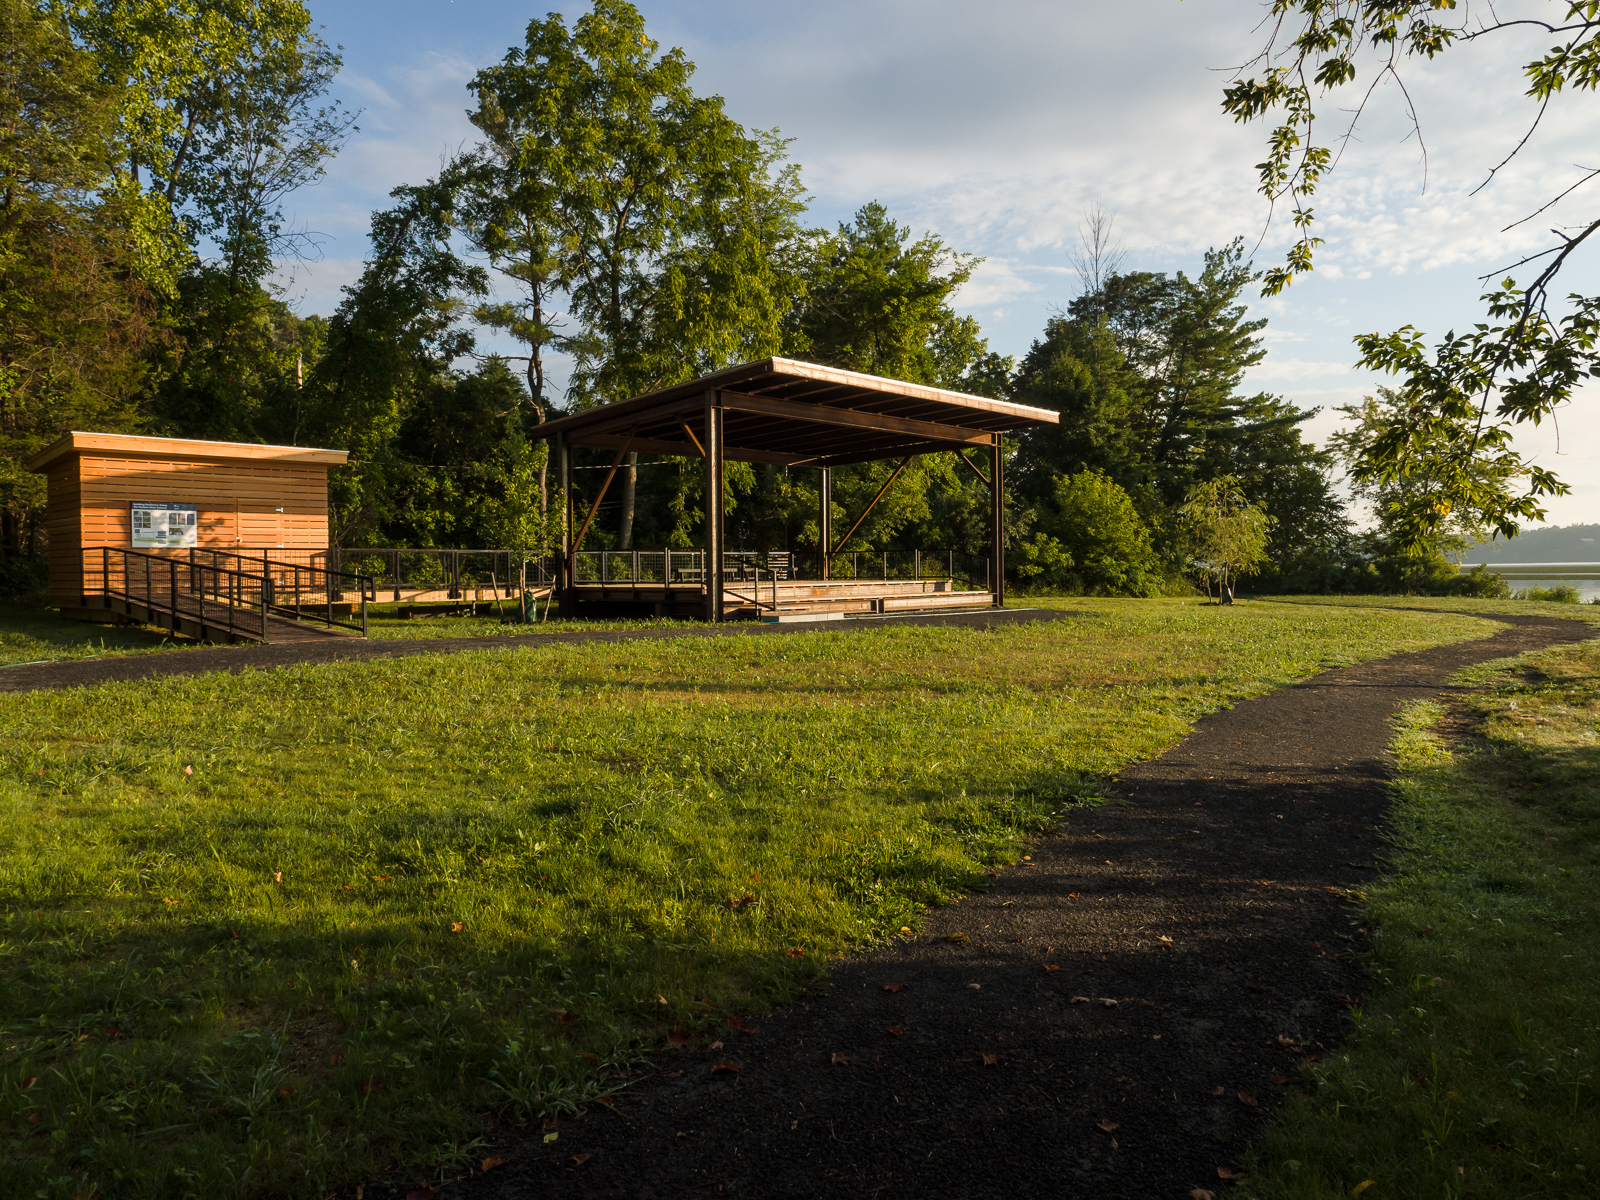 Pavilion at Esopus Meadows